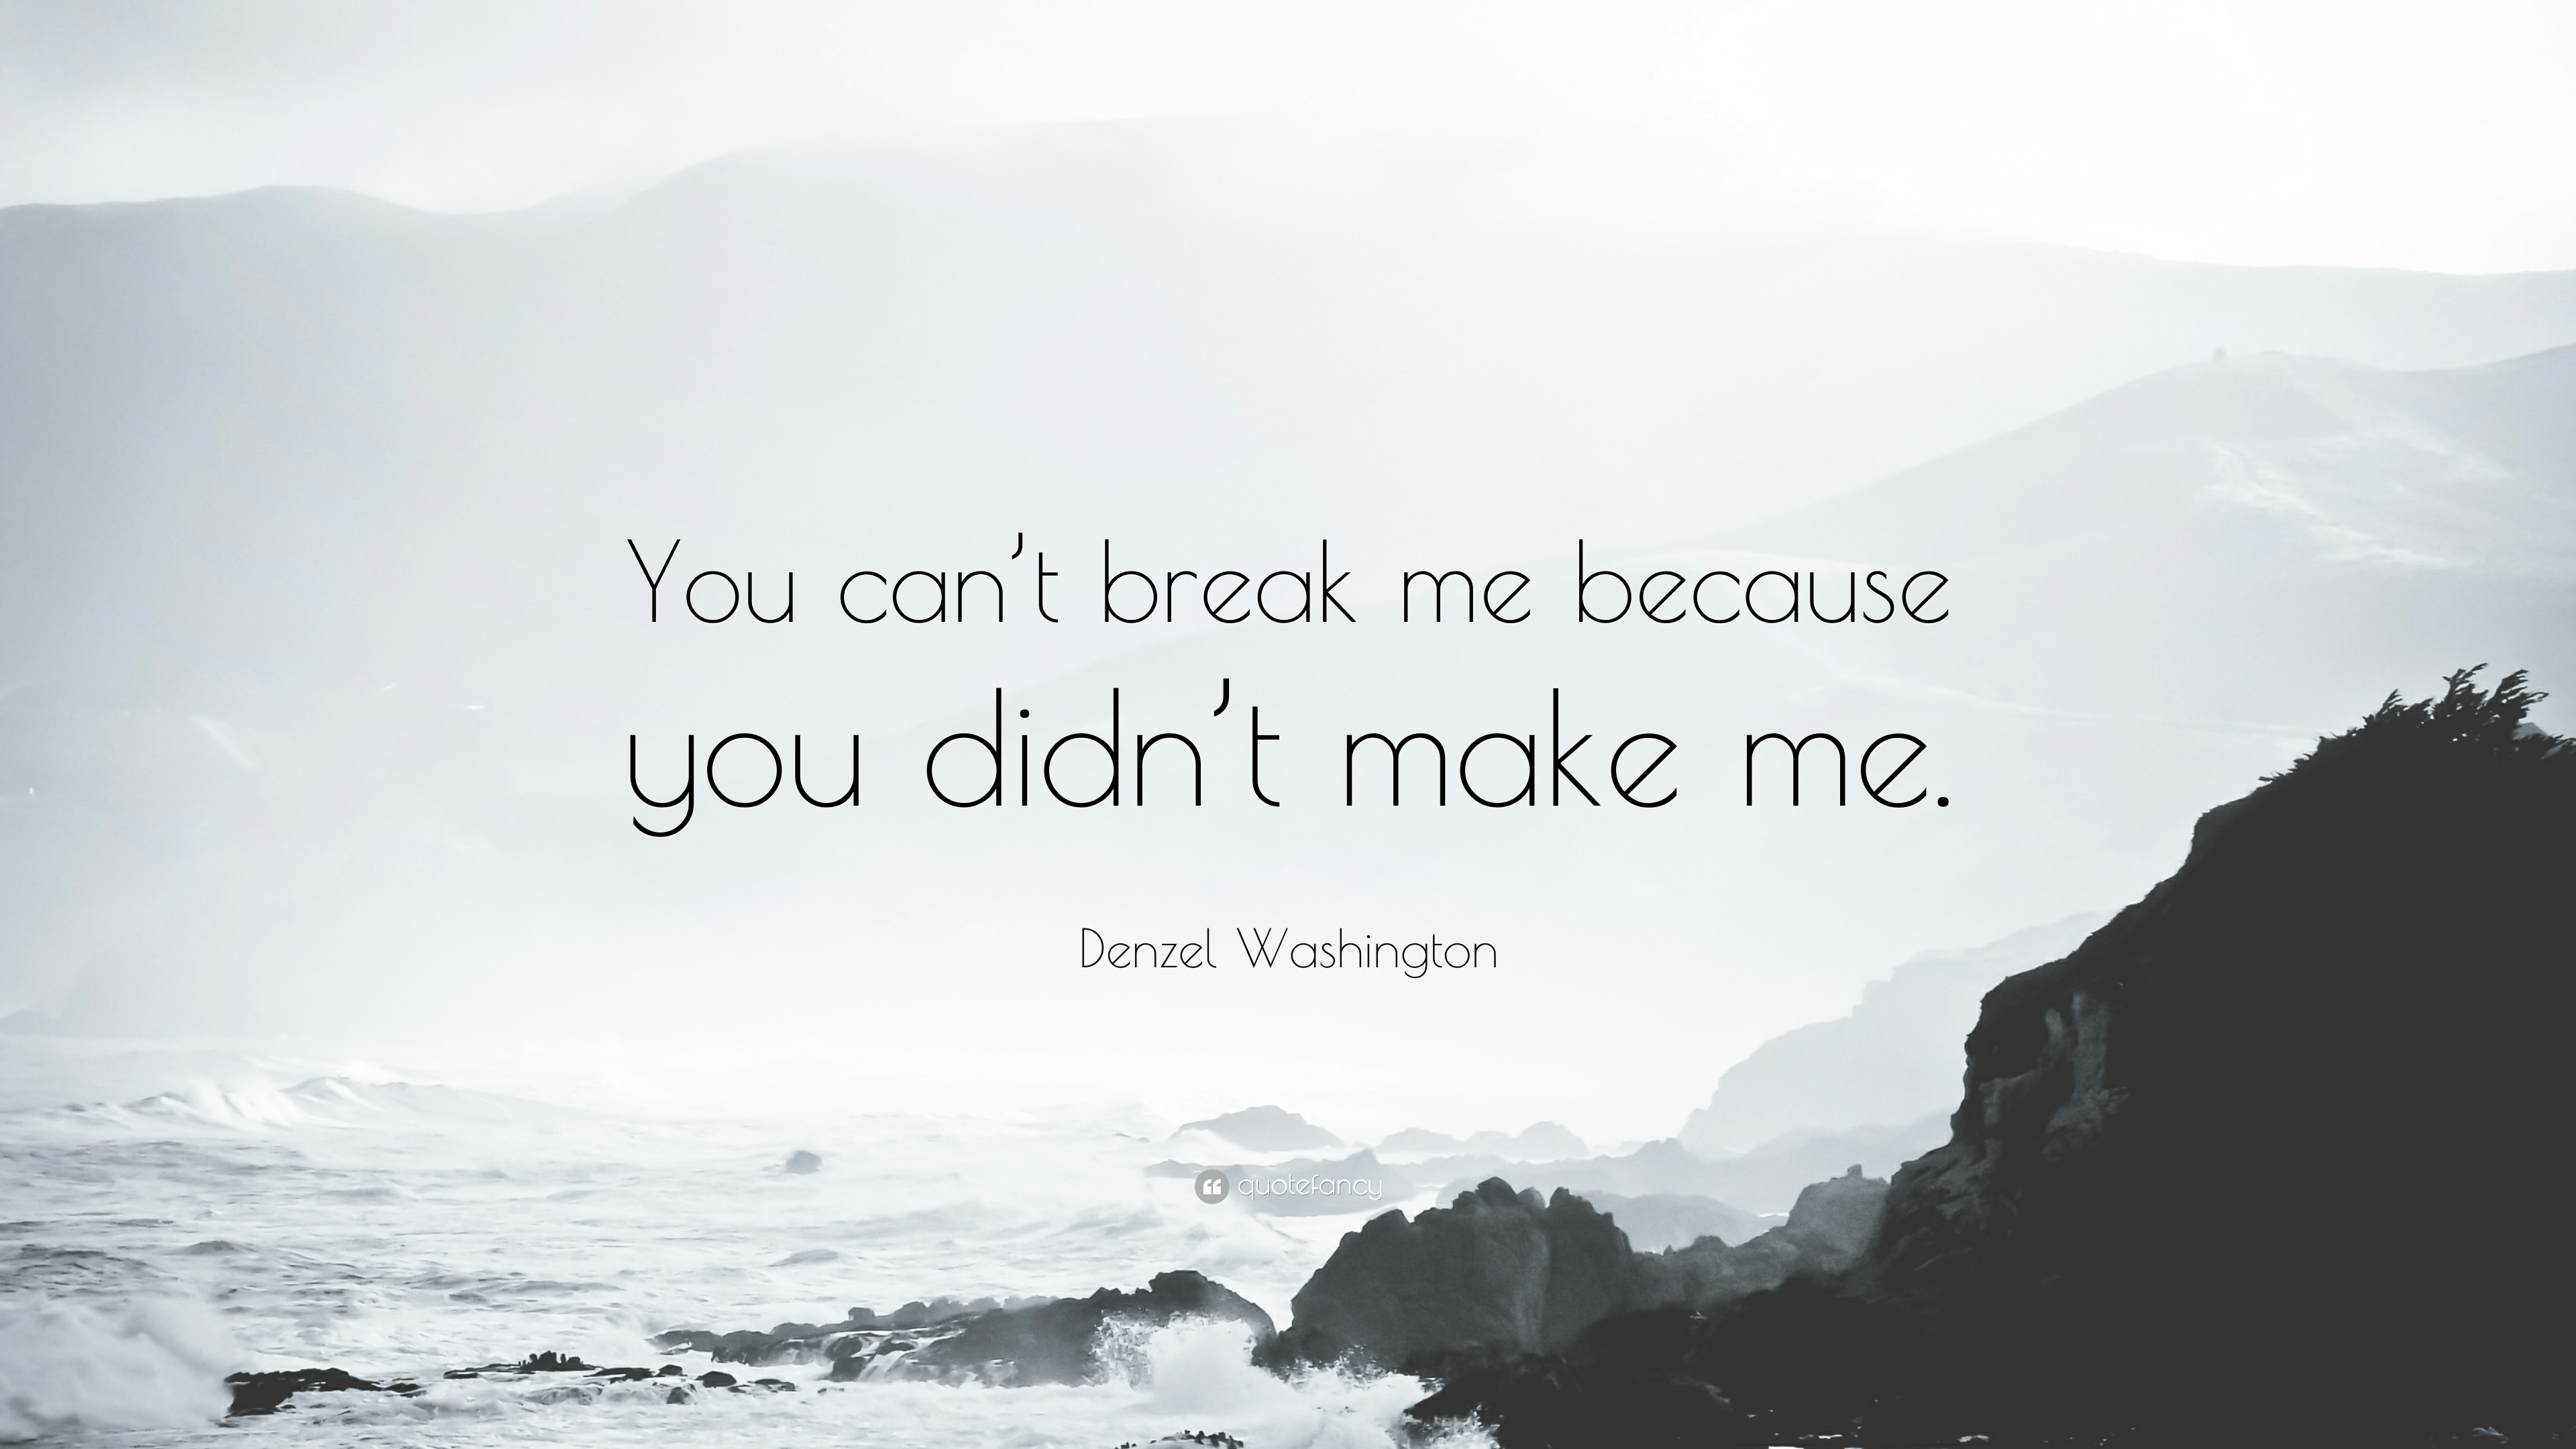 Denzel Washington Quote Wallpaper Denzel Washington Quote You Can T Break Me Because You